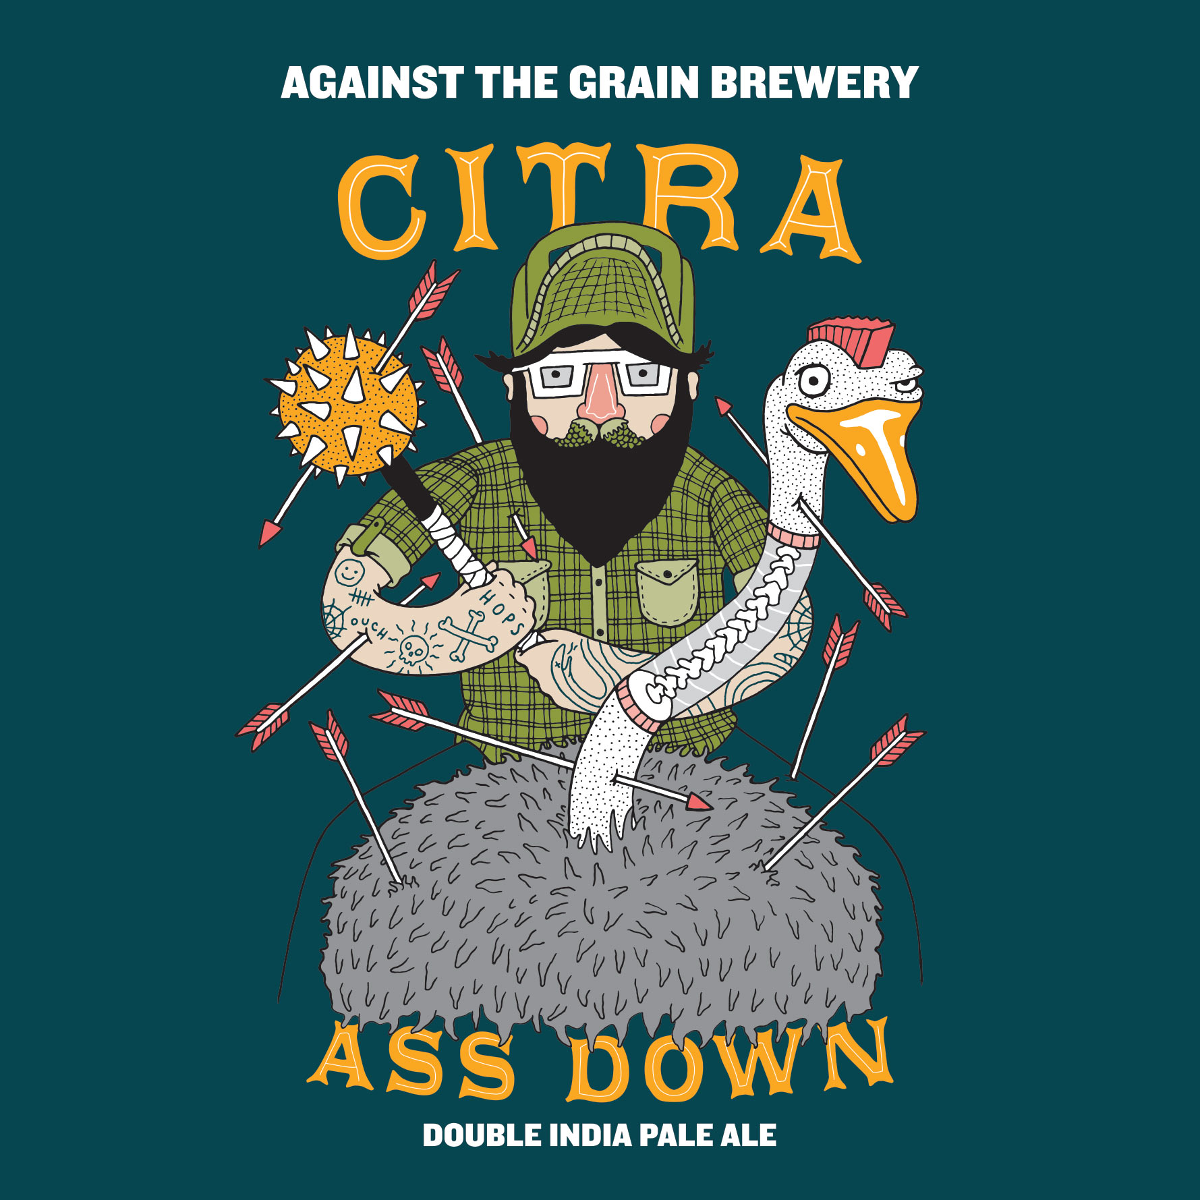 Against the Grain 'Citra Ass Down' Double IPA 16oz Can